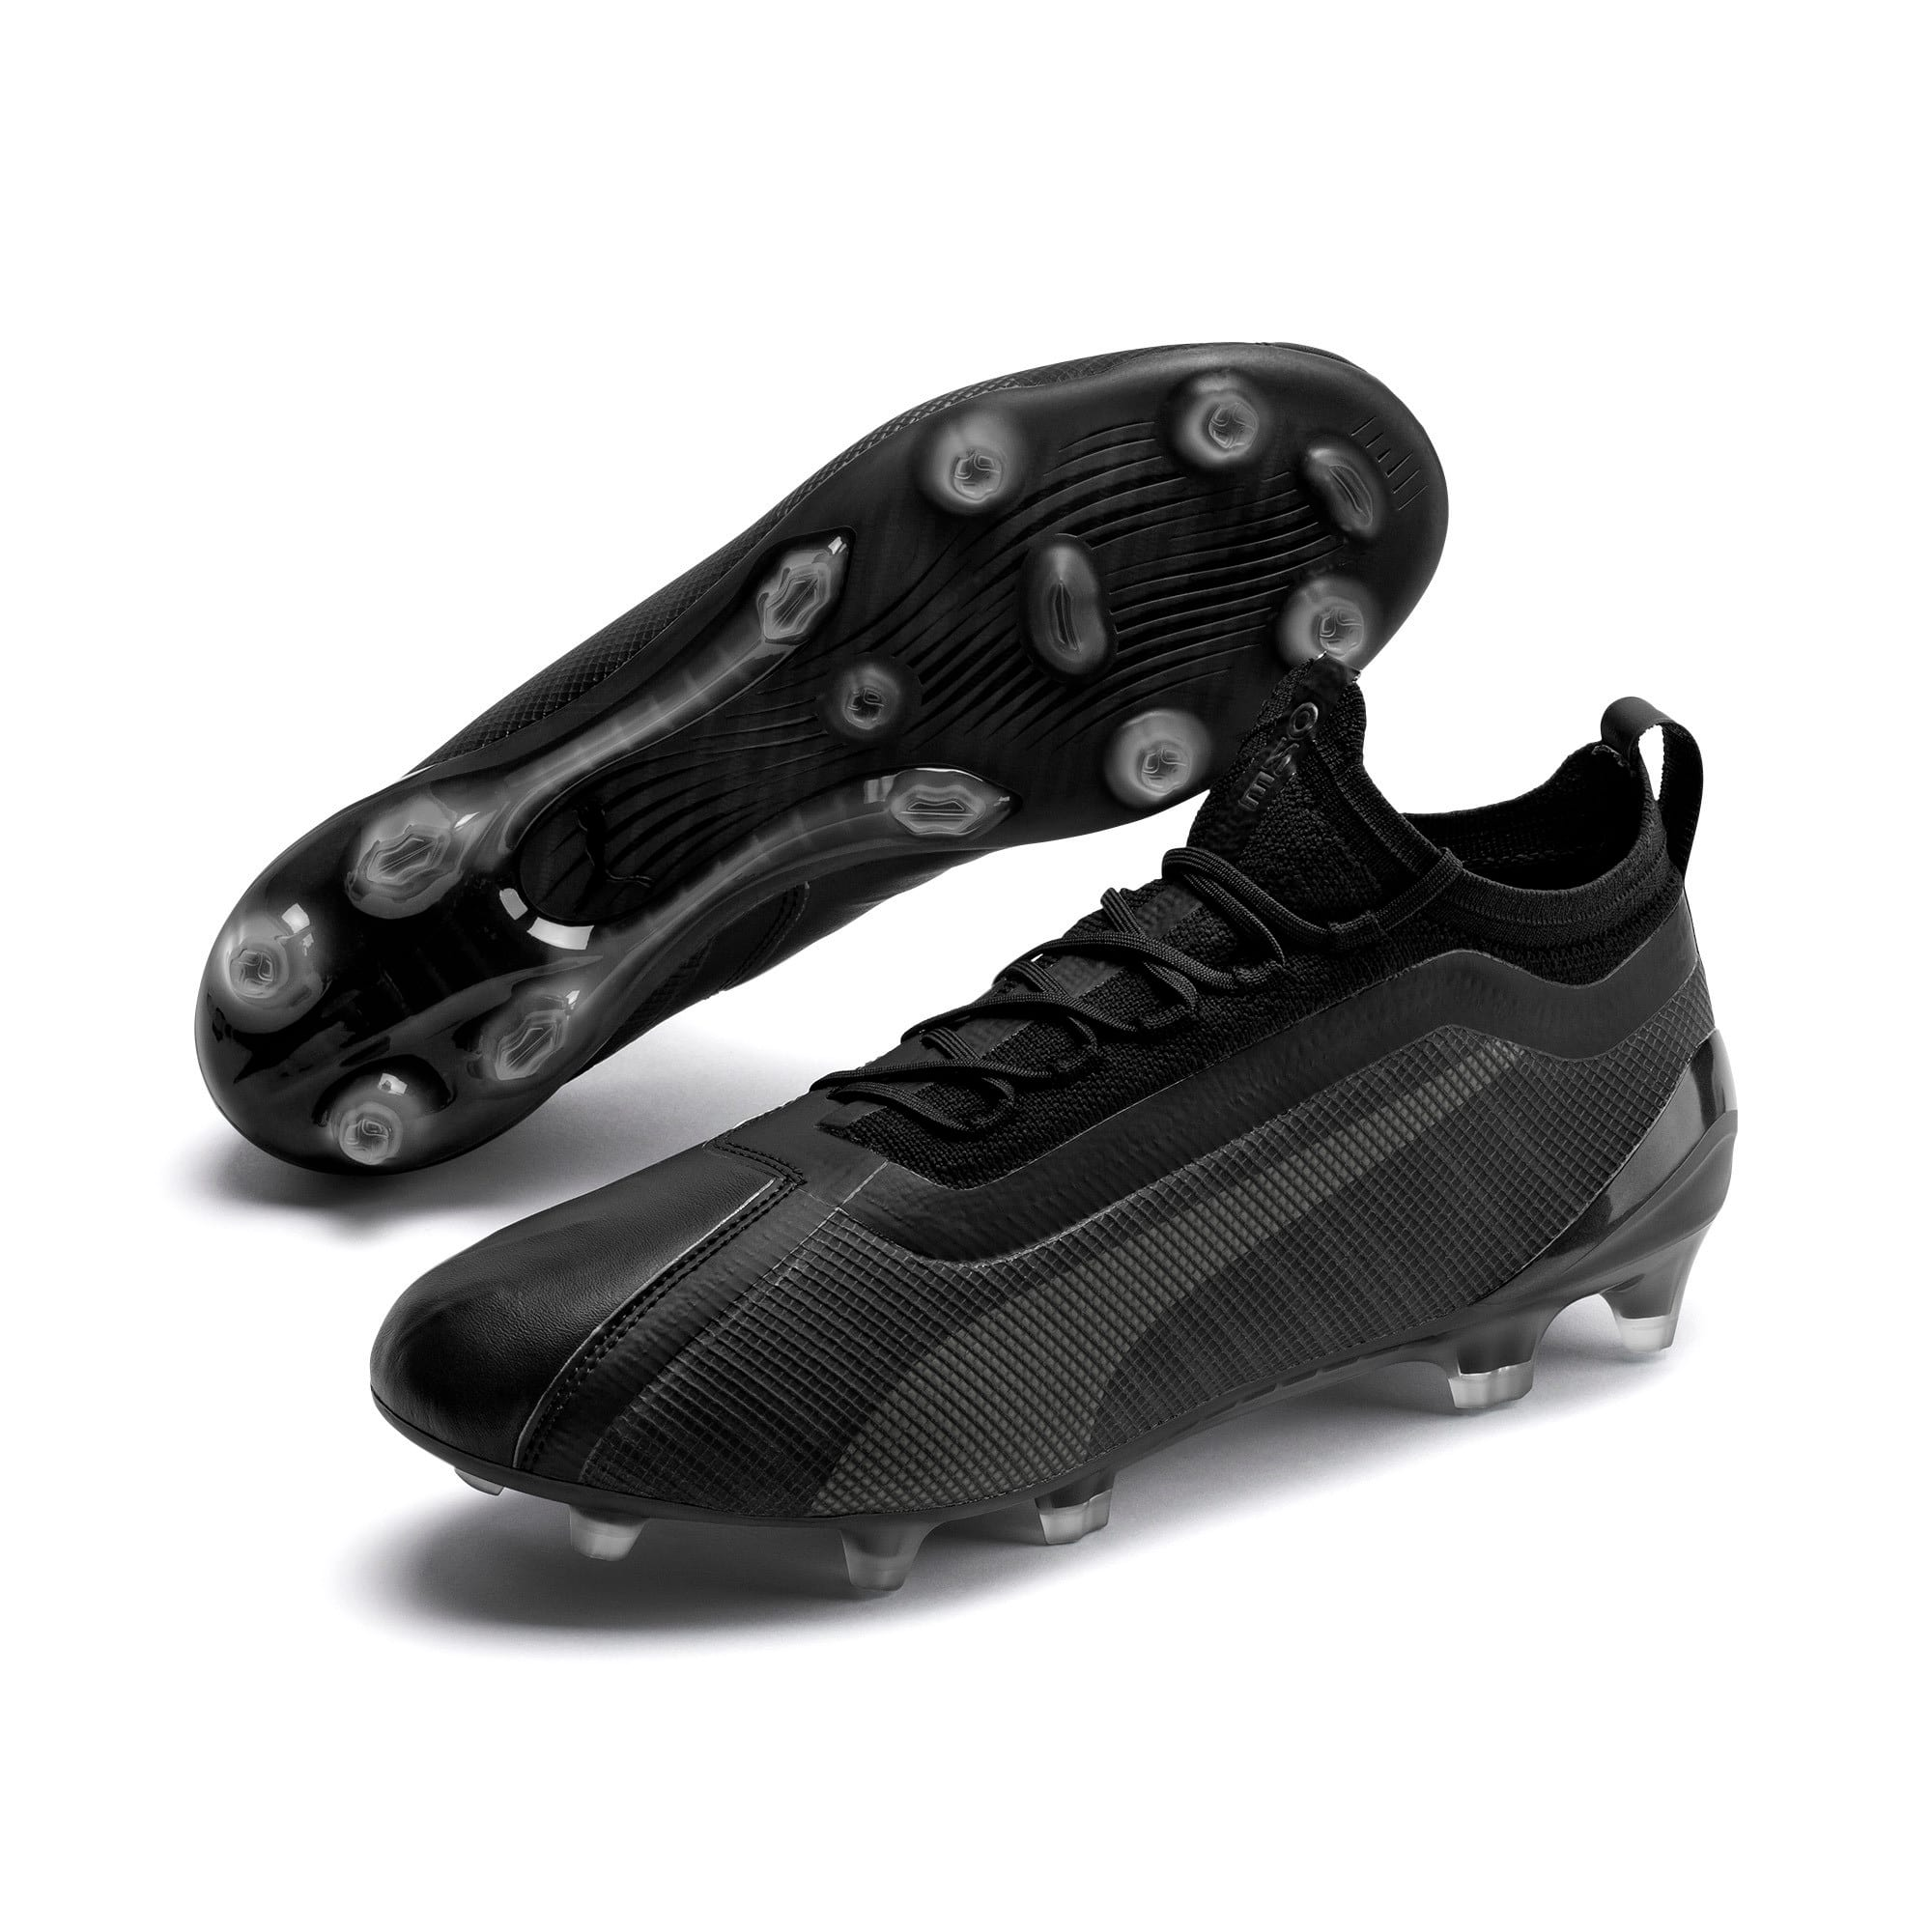 Thumbnail 2 of PUMA ONE 5.1 evoKNIT FG/AG Men's Football Boots, Black-Black-Puma Aged Silver, medium